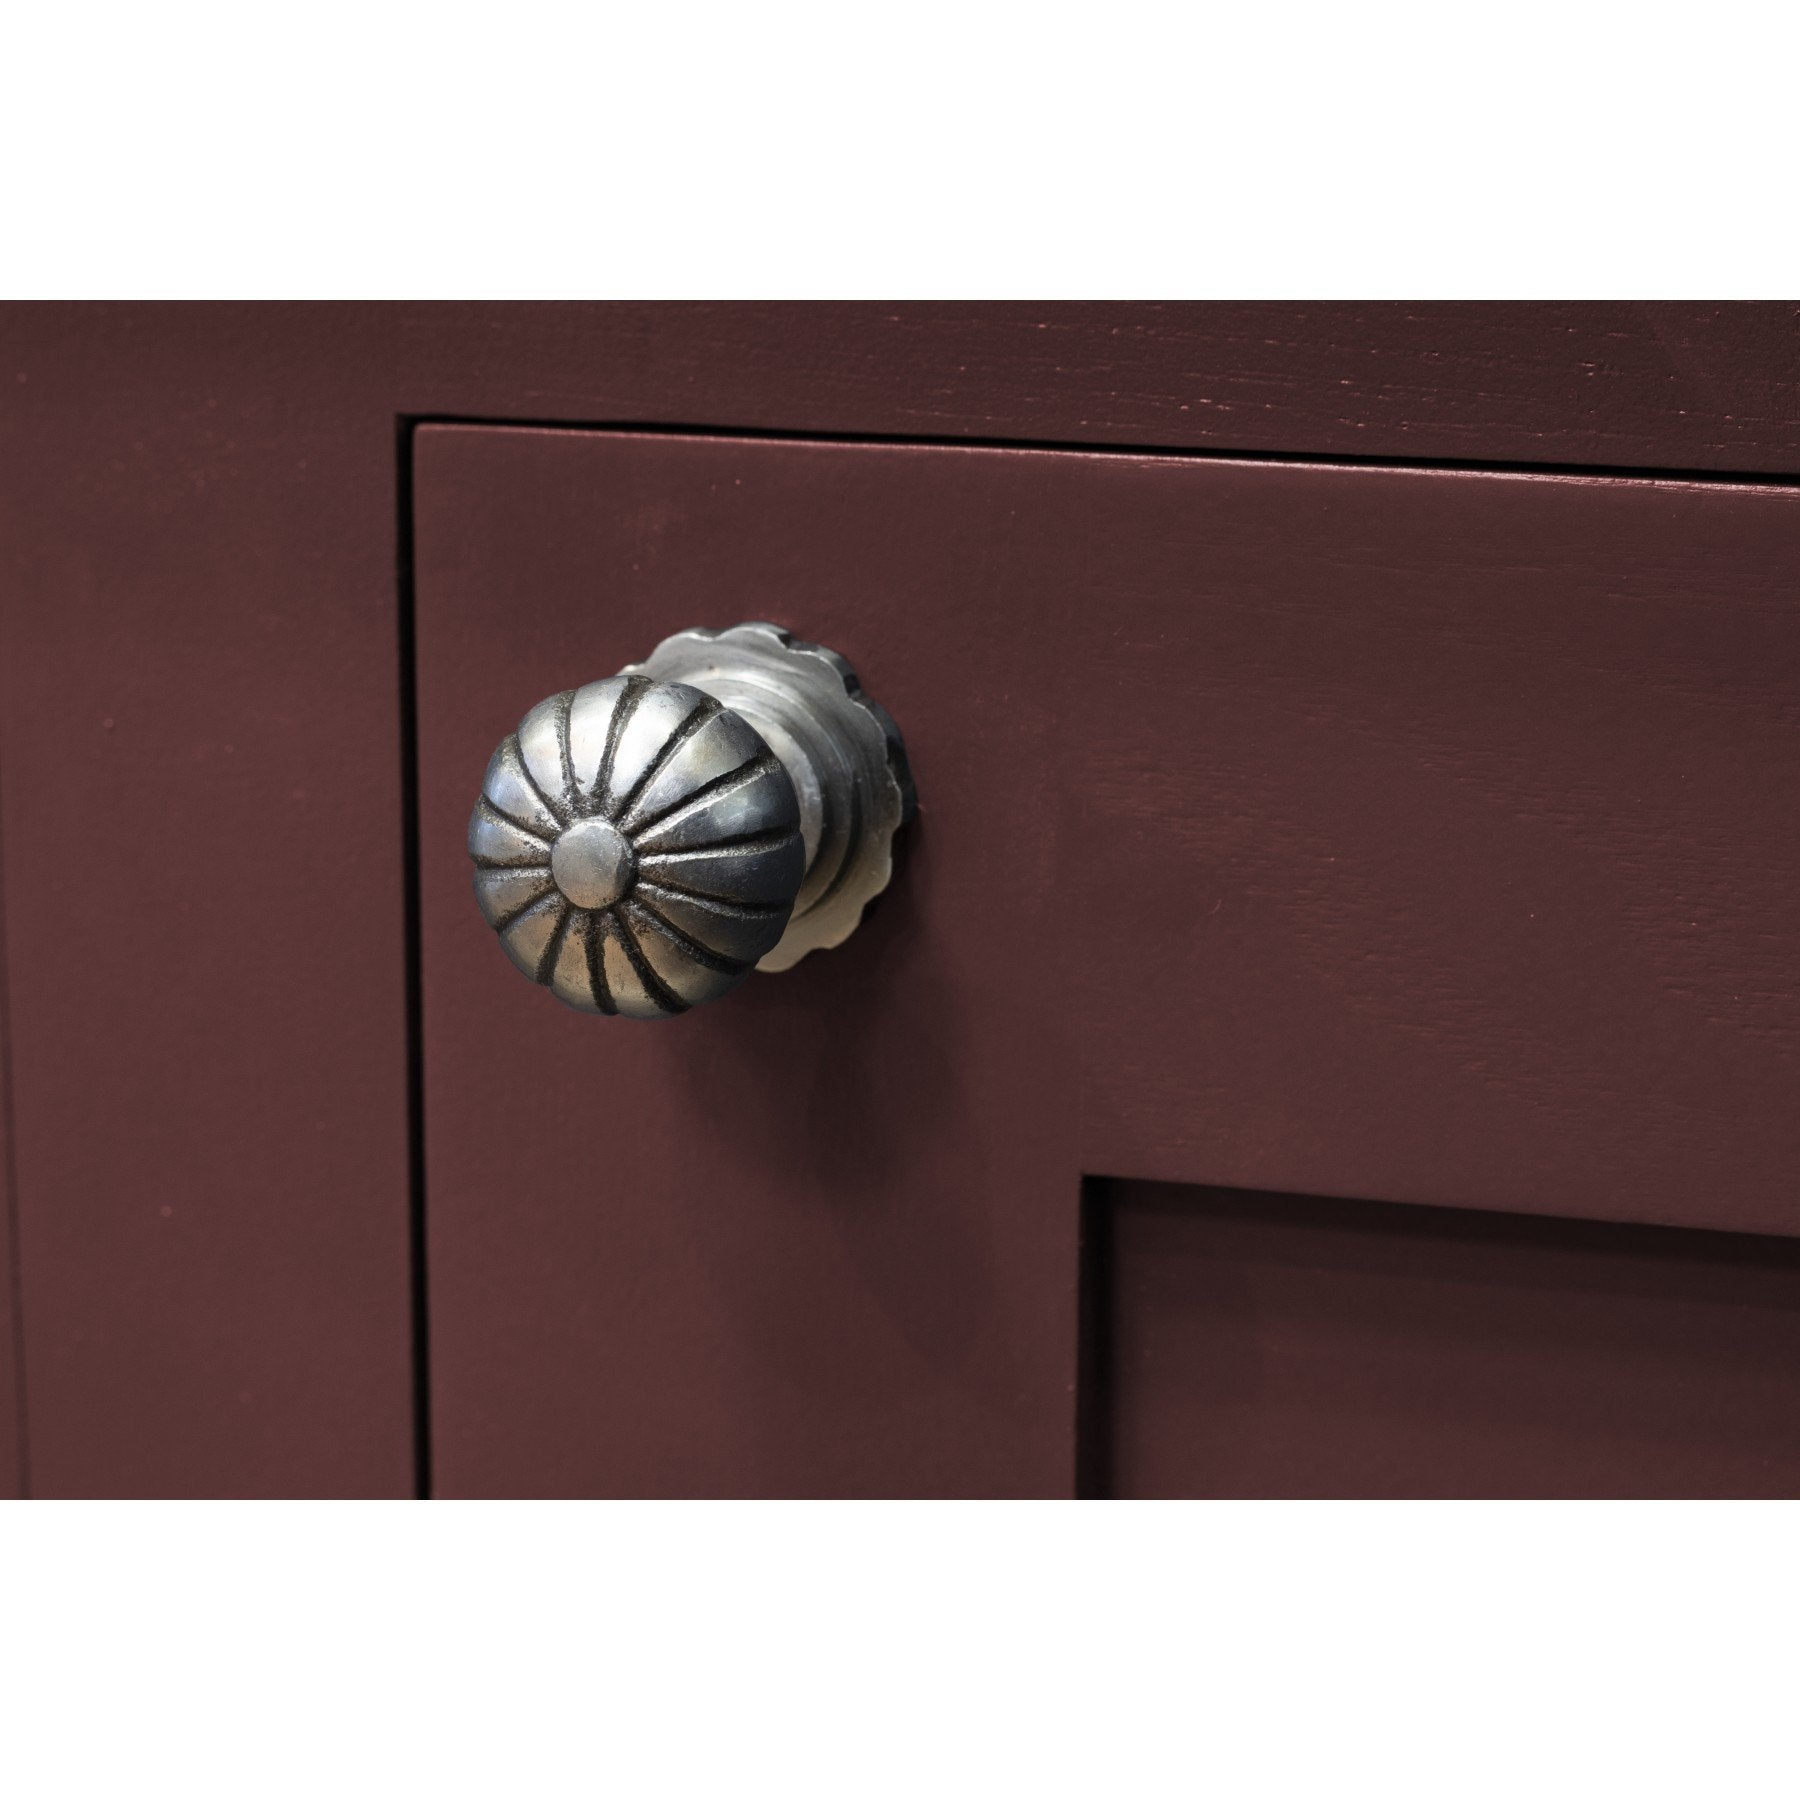 Natural Smooth Cabinet Knob (with base) - Small - No.42 Interiors